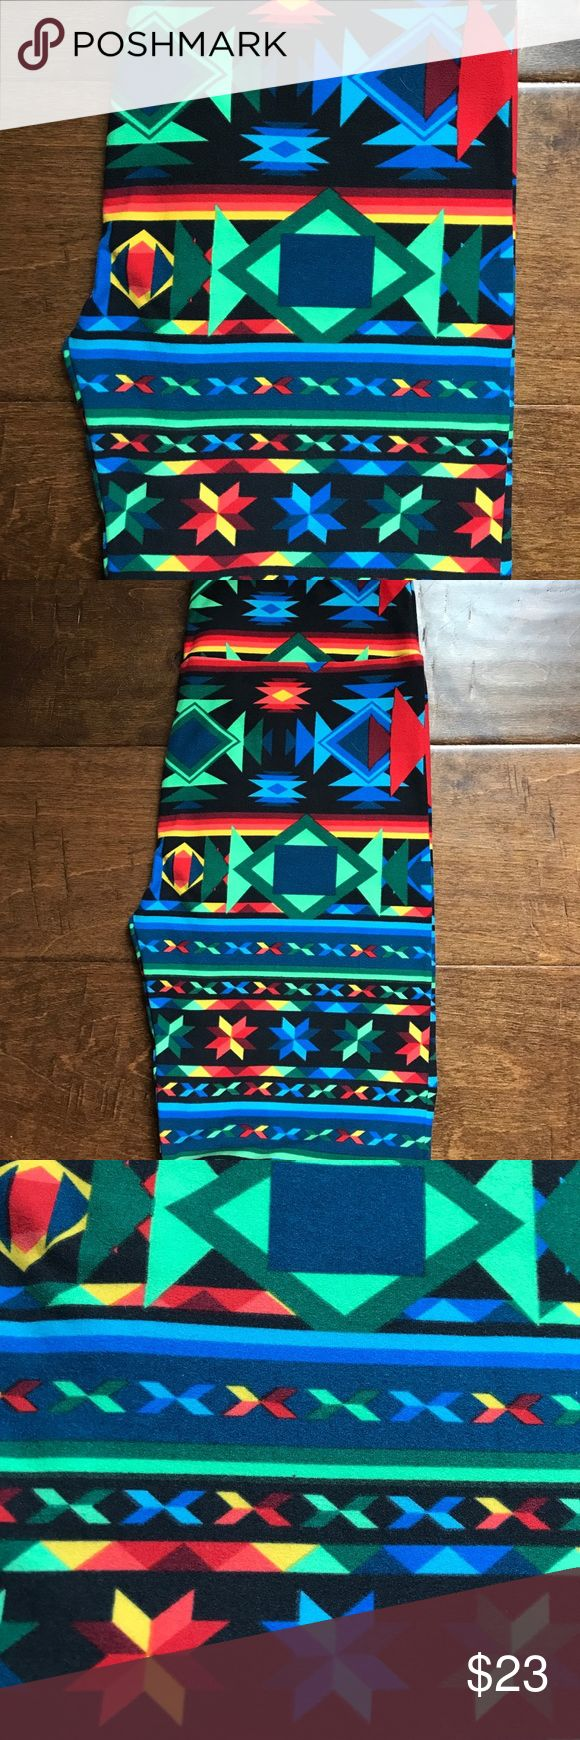 LuLaRoe Aztec Tribal Print OS Leggings These brand new, never worn LuLaRoe leggings are so cool - gorgeous tribal/Aztec print and so versatile... not to mention SOFT!  these are One Size and will fit sizes 0 - 12. Feel free to make an offer! LuLaRoe Pants Leggings